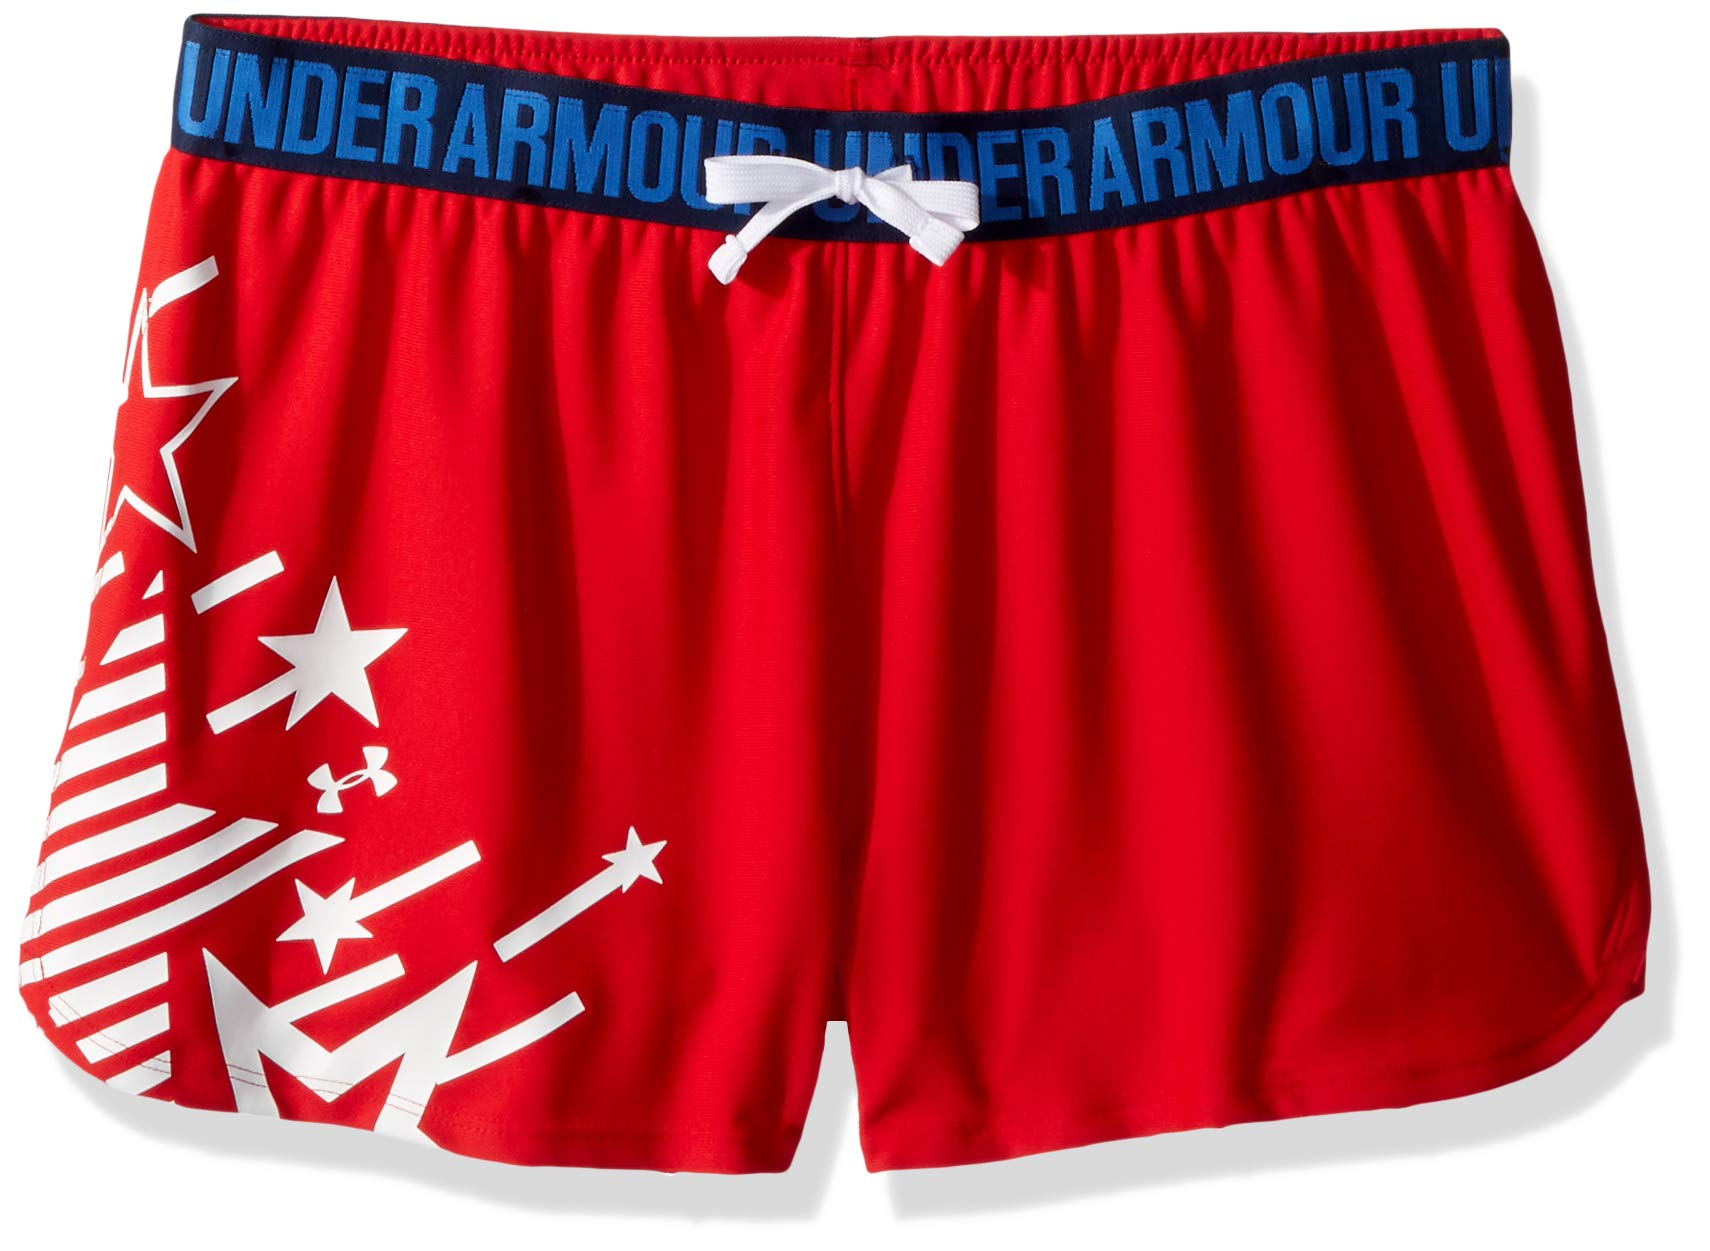 Under Armour Girls Americana Play Up Short, Pierce /White, Youth X-Small by Under Armour